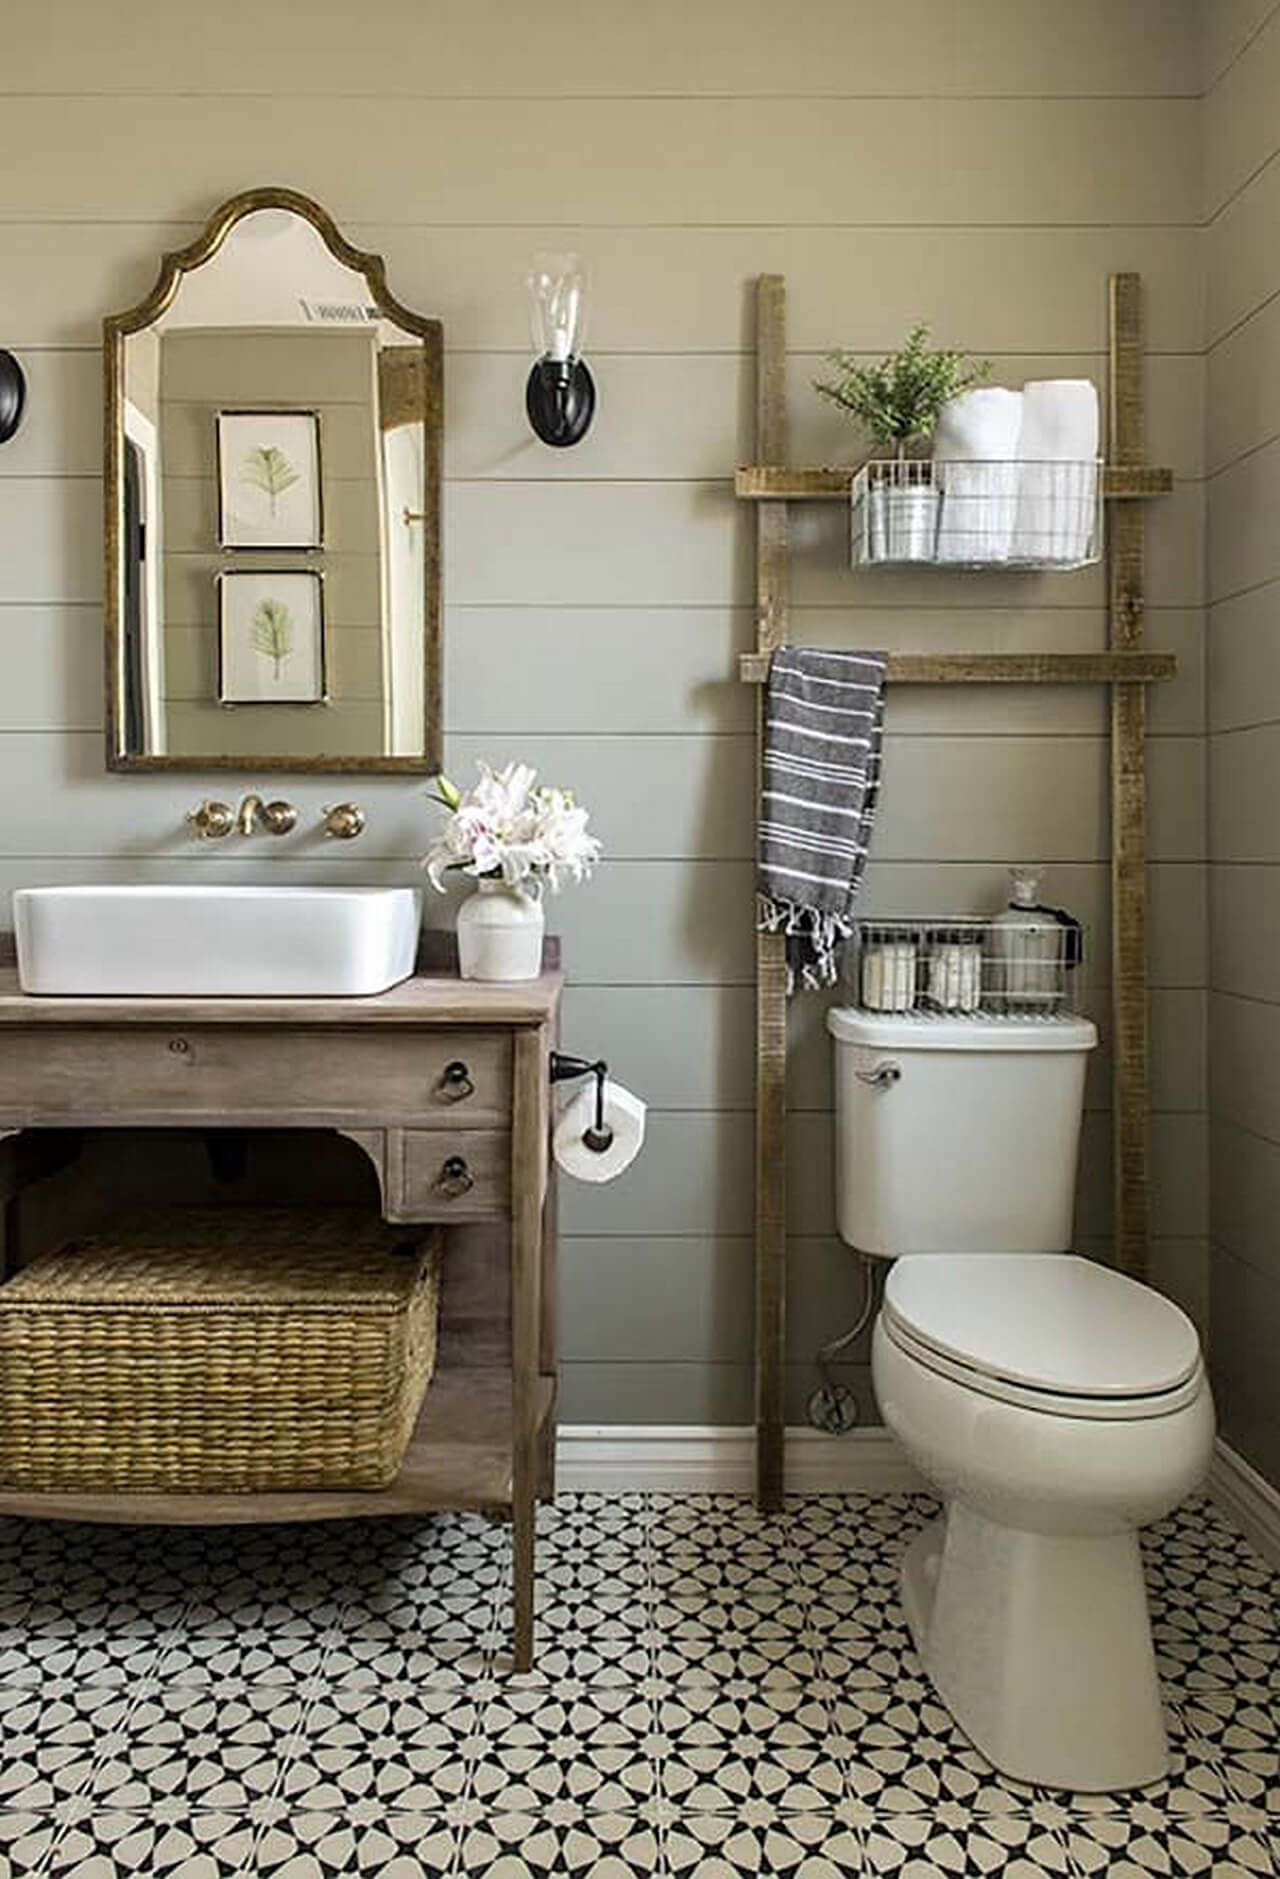 Delighful Bathrooms Designs 2017 Suite Bathroom Pictures From Hgtv